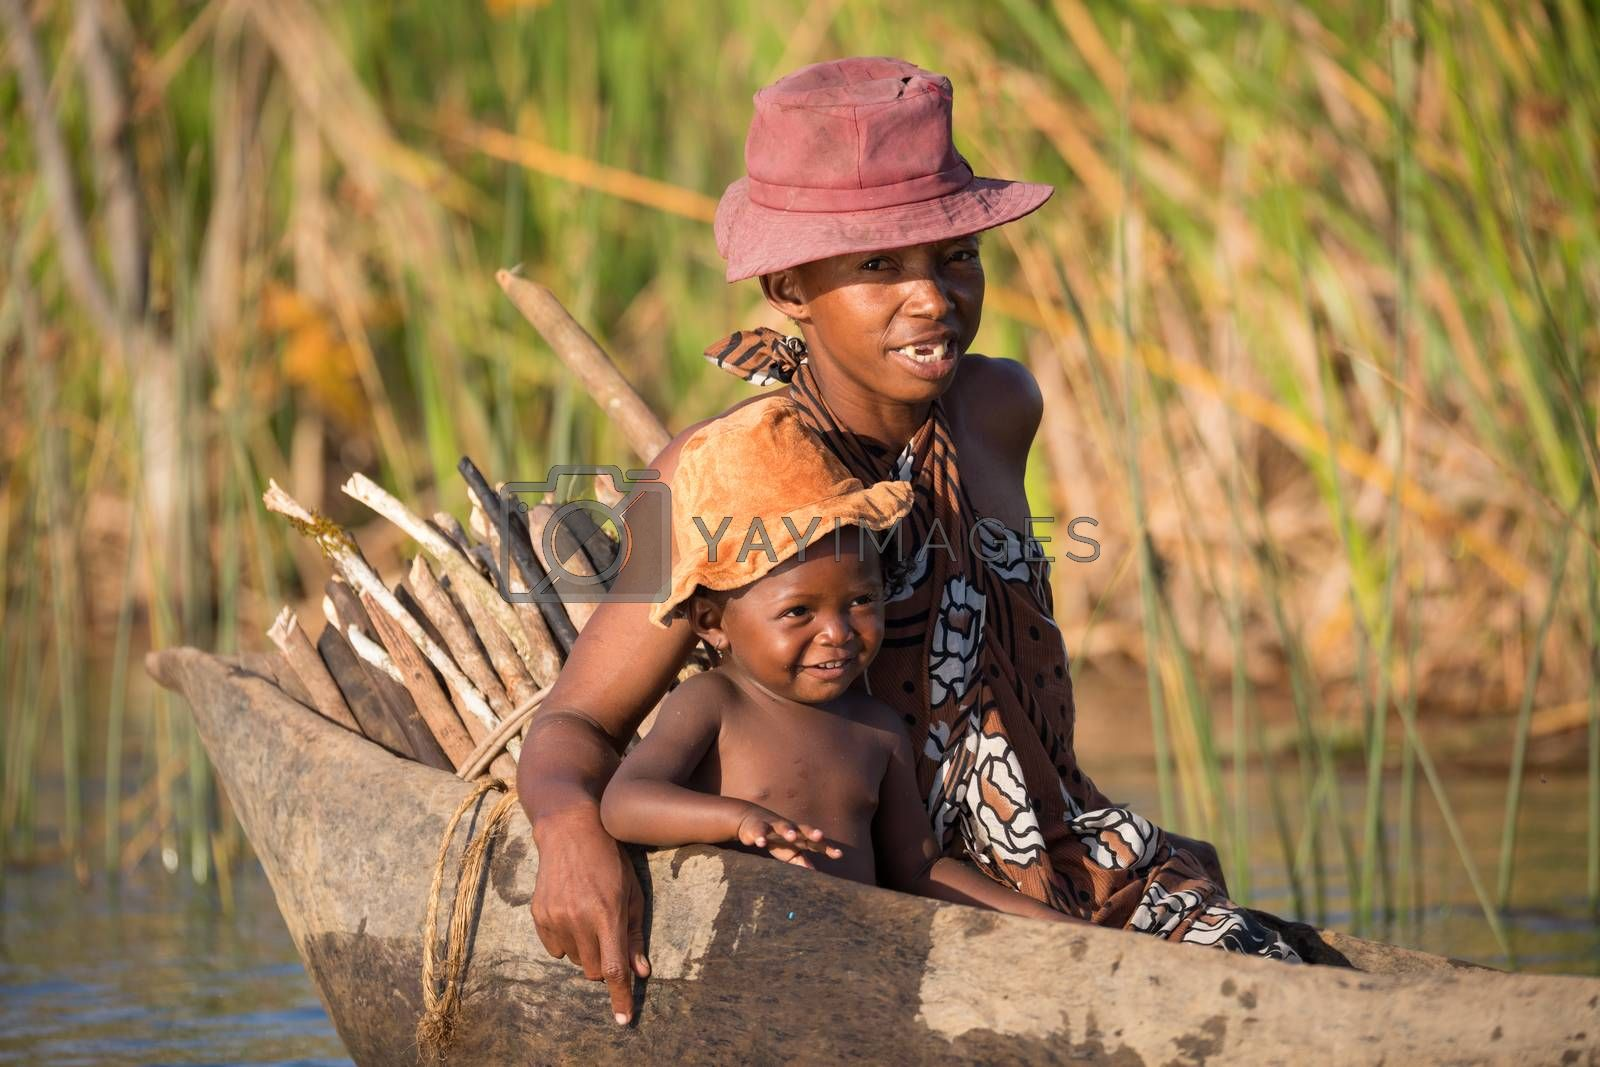 MADAGASCAR OCTOBER 18.2016 Malagasy countryside people from village transport freight by Traditional handmade dugout wooden boat. Everyday life on the river. Maroantsetra October 18. 2016, Madagascar.